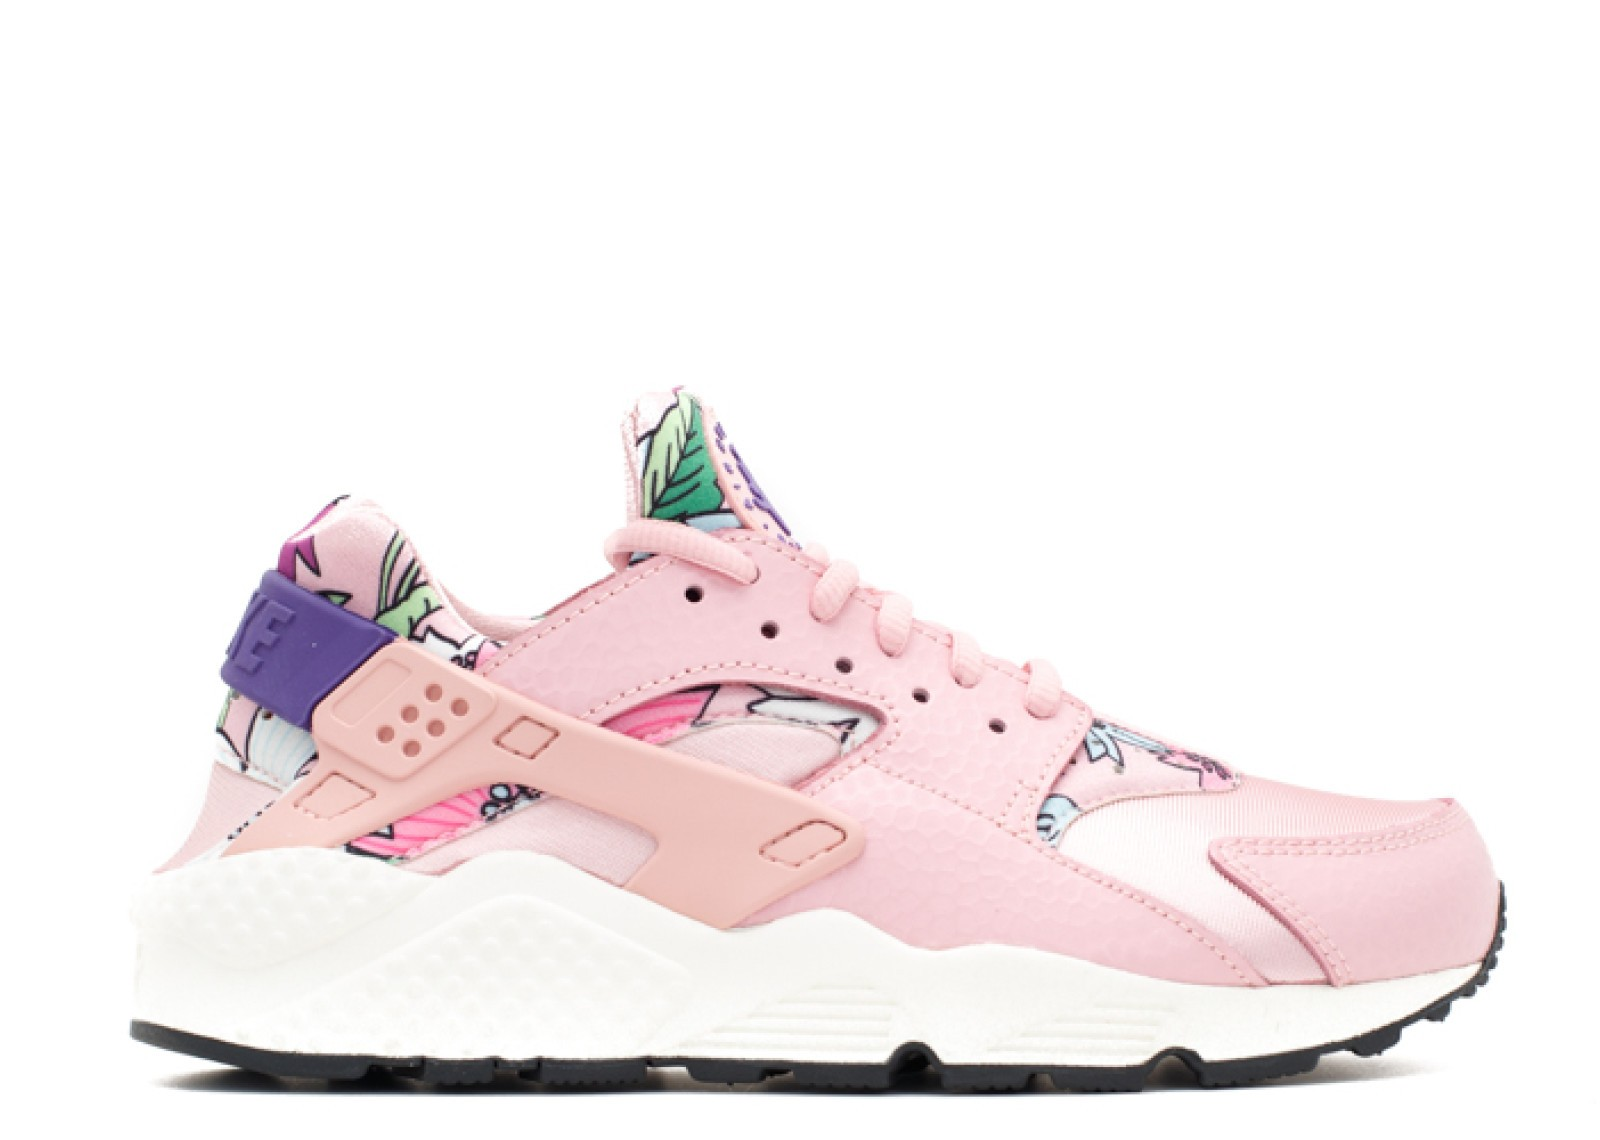 839a789febdf Prev Womens Air Huarache Run Print Aloha Pack Pink Purple Varsity Glaze  Black Soul 725076-600. Zoom